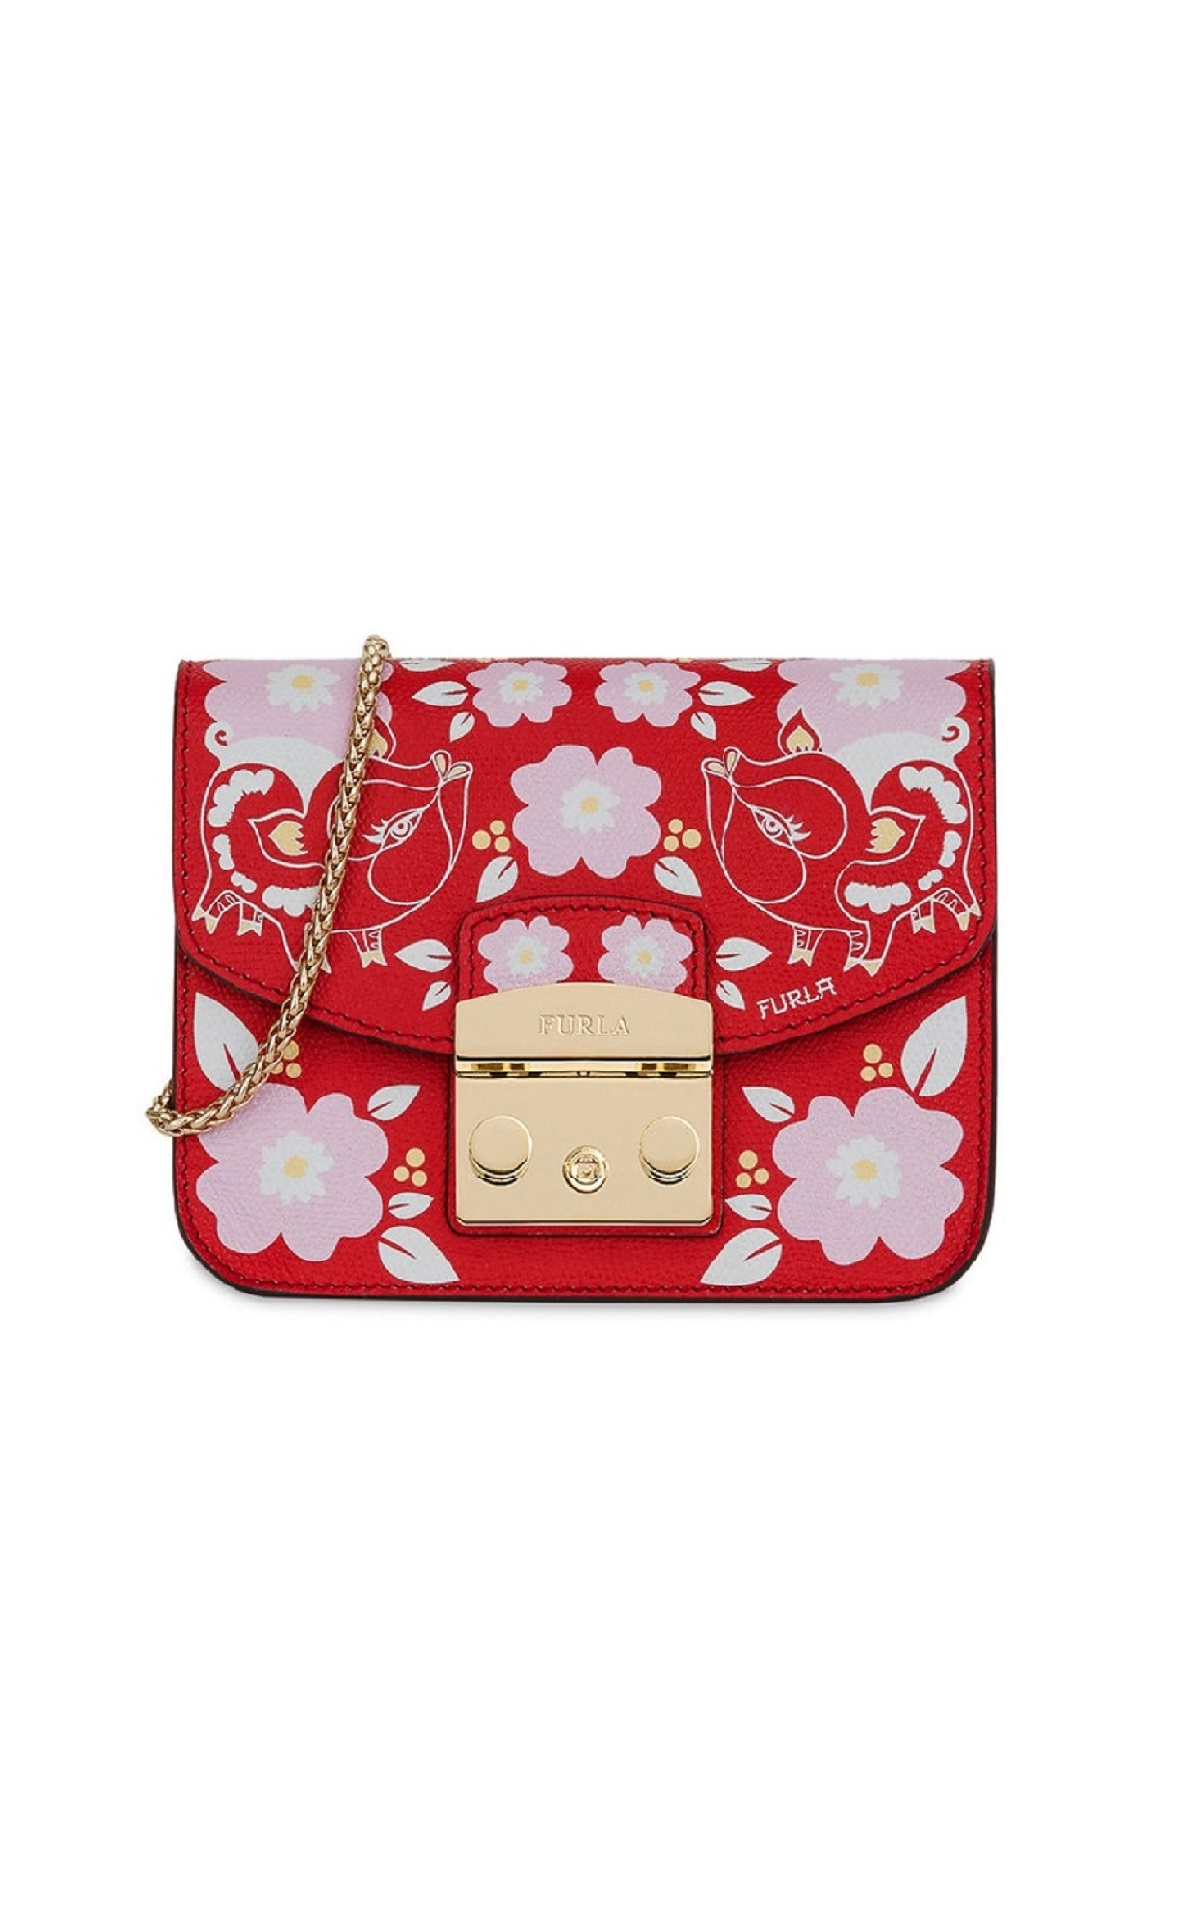 Red Metropolis bag with pink flowers Furla